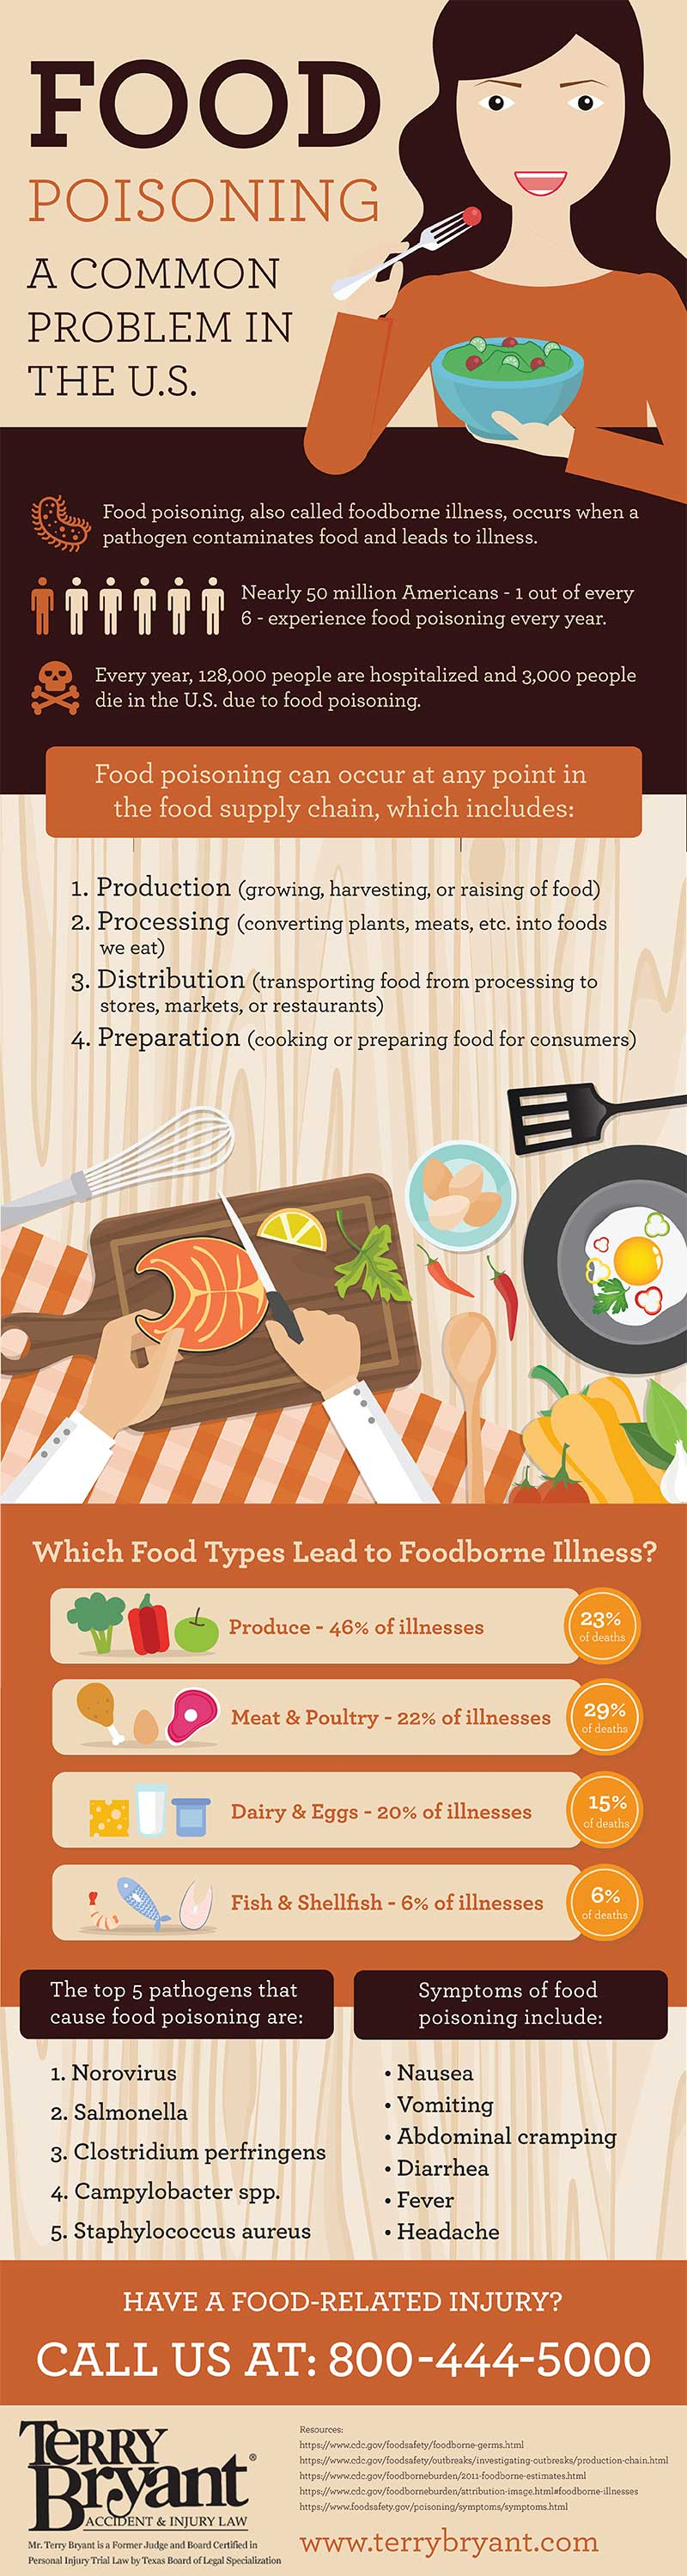 Food Poisoning: A Common Problem In the United States #infographic